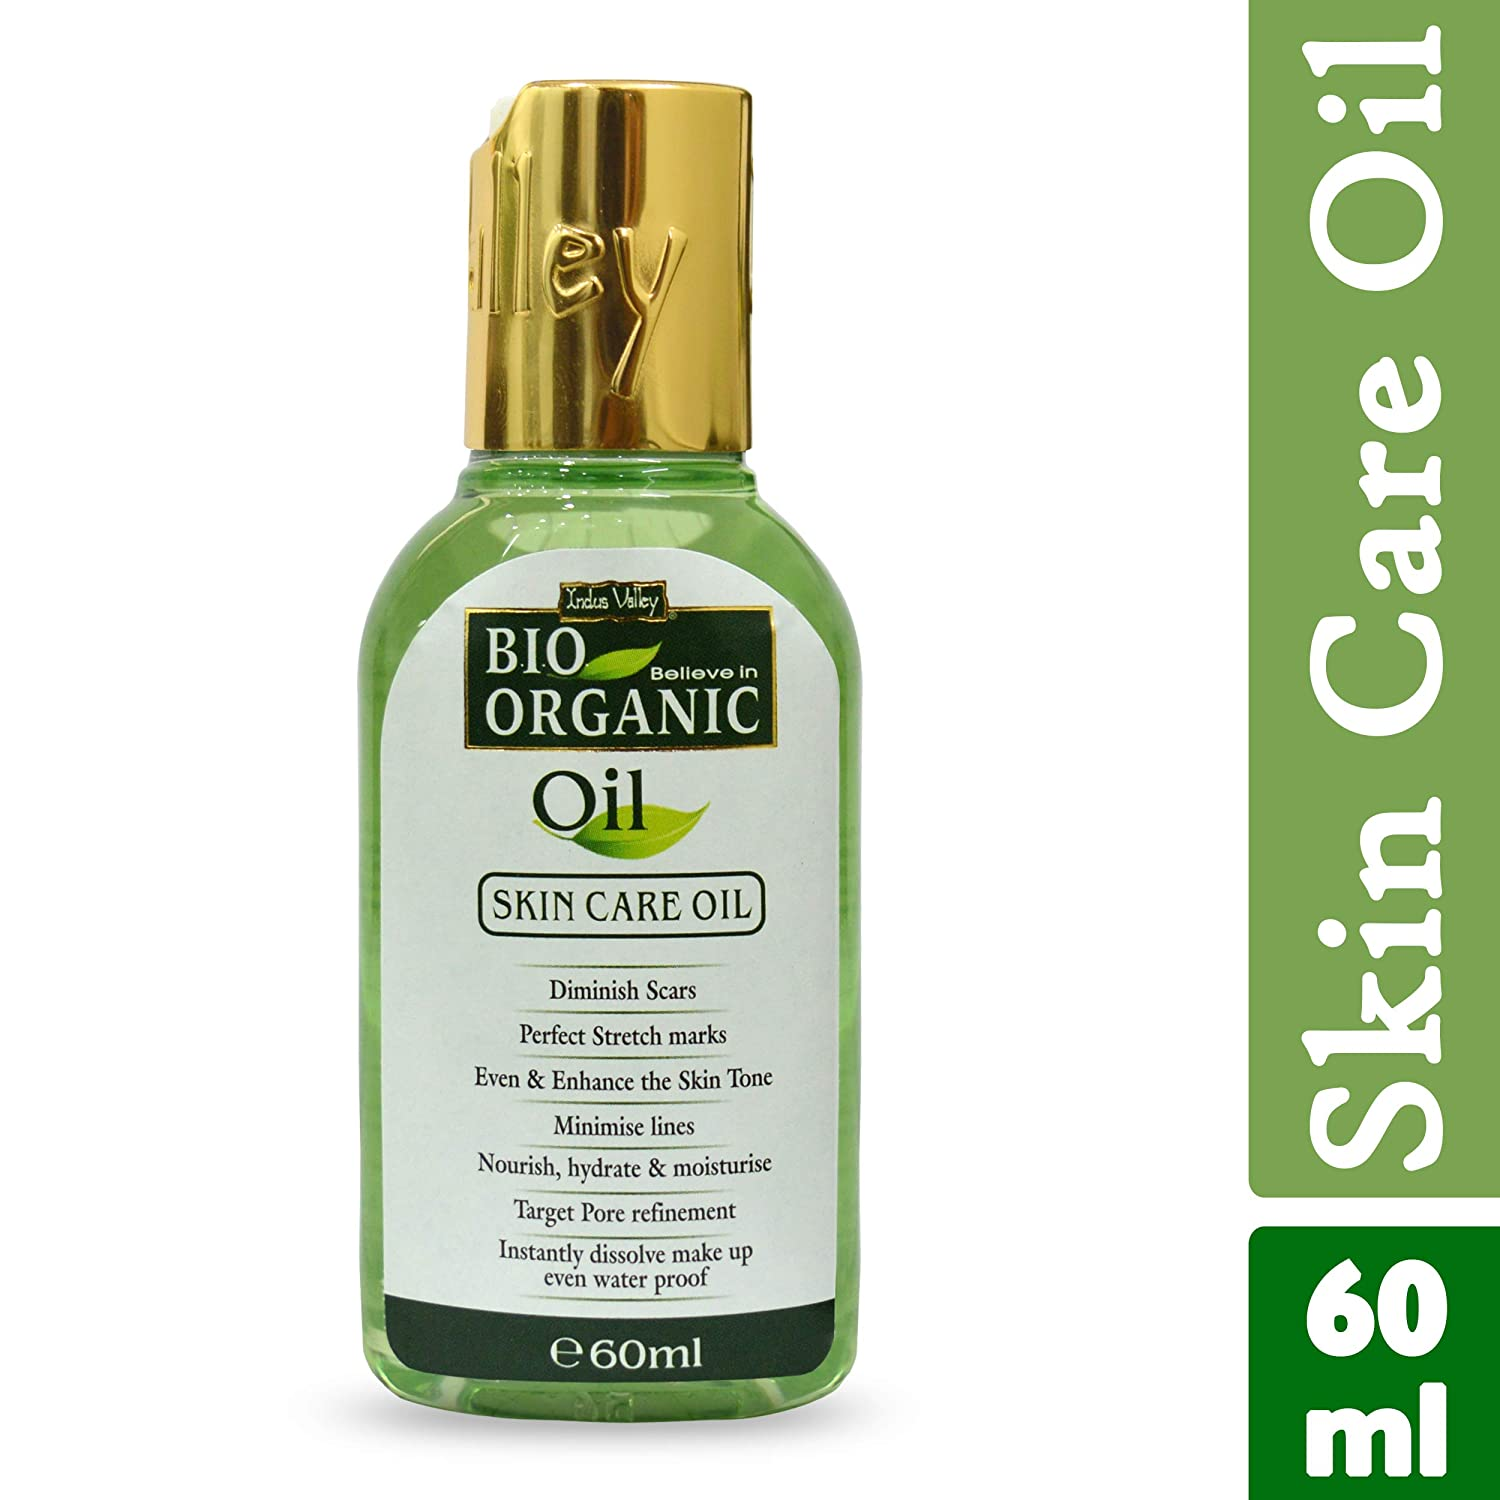 Indus Valley Bio Organic Oil